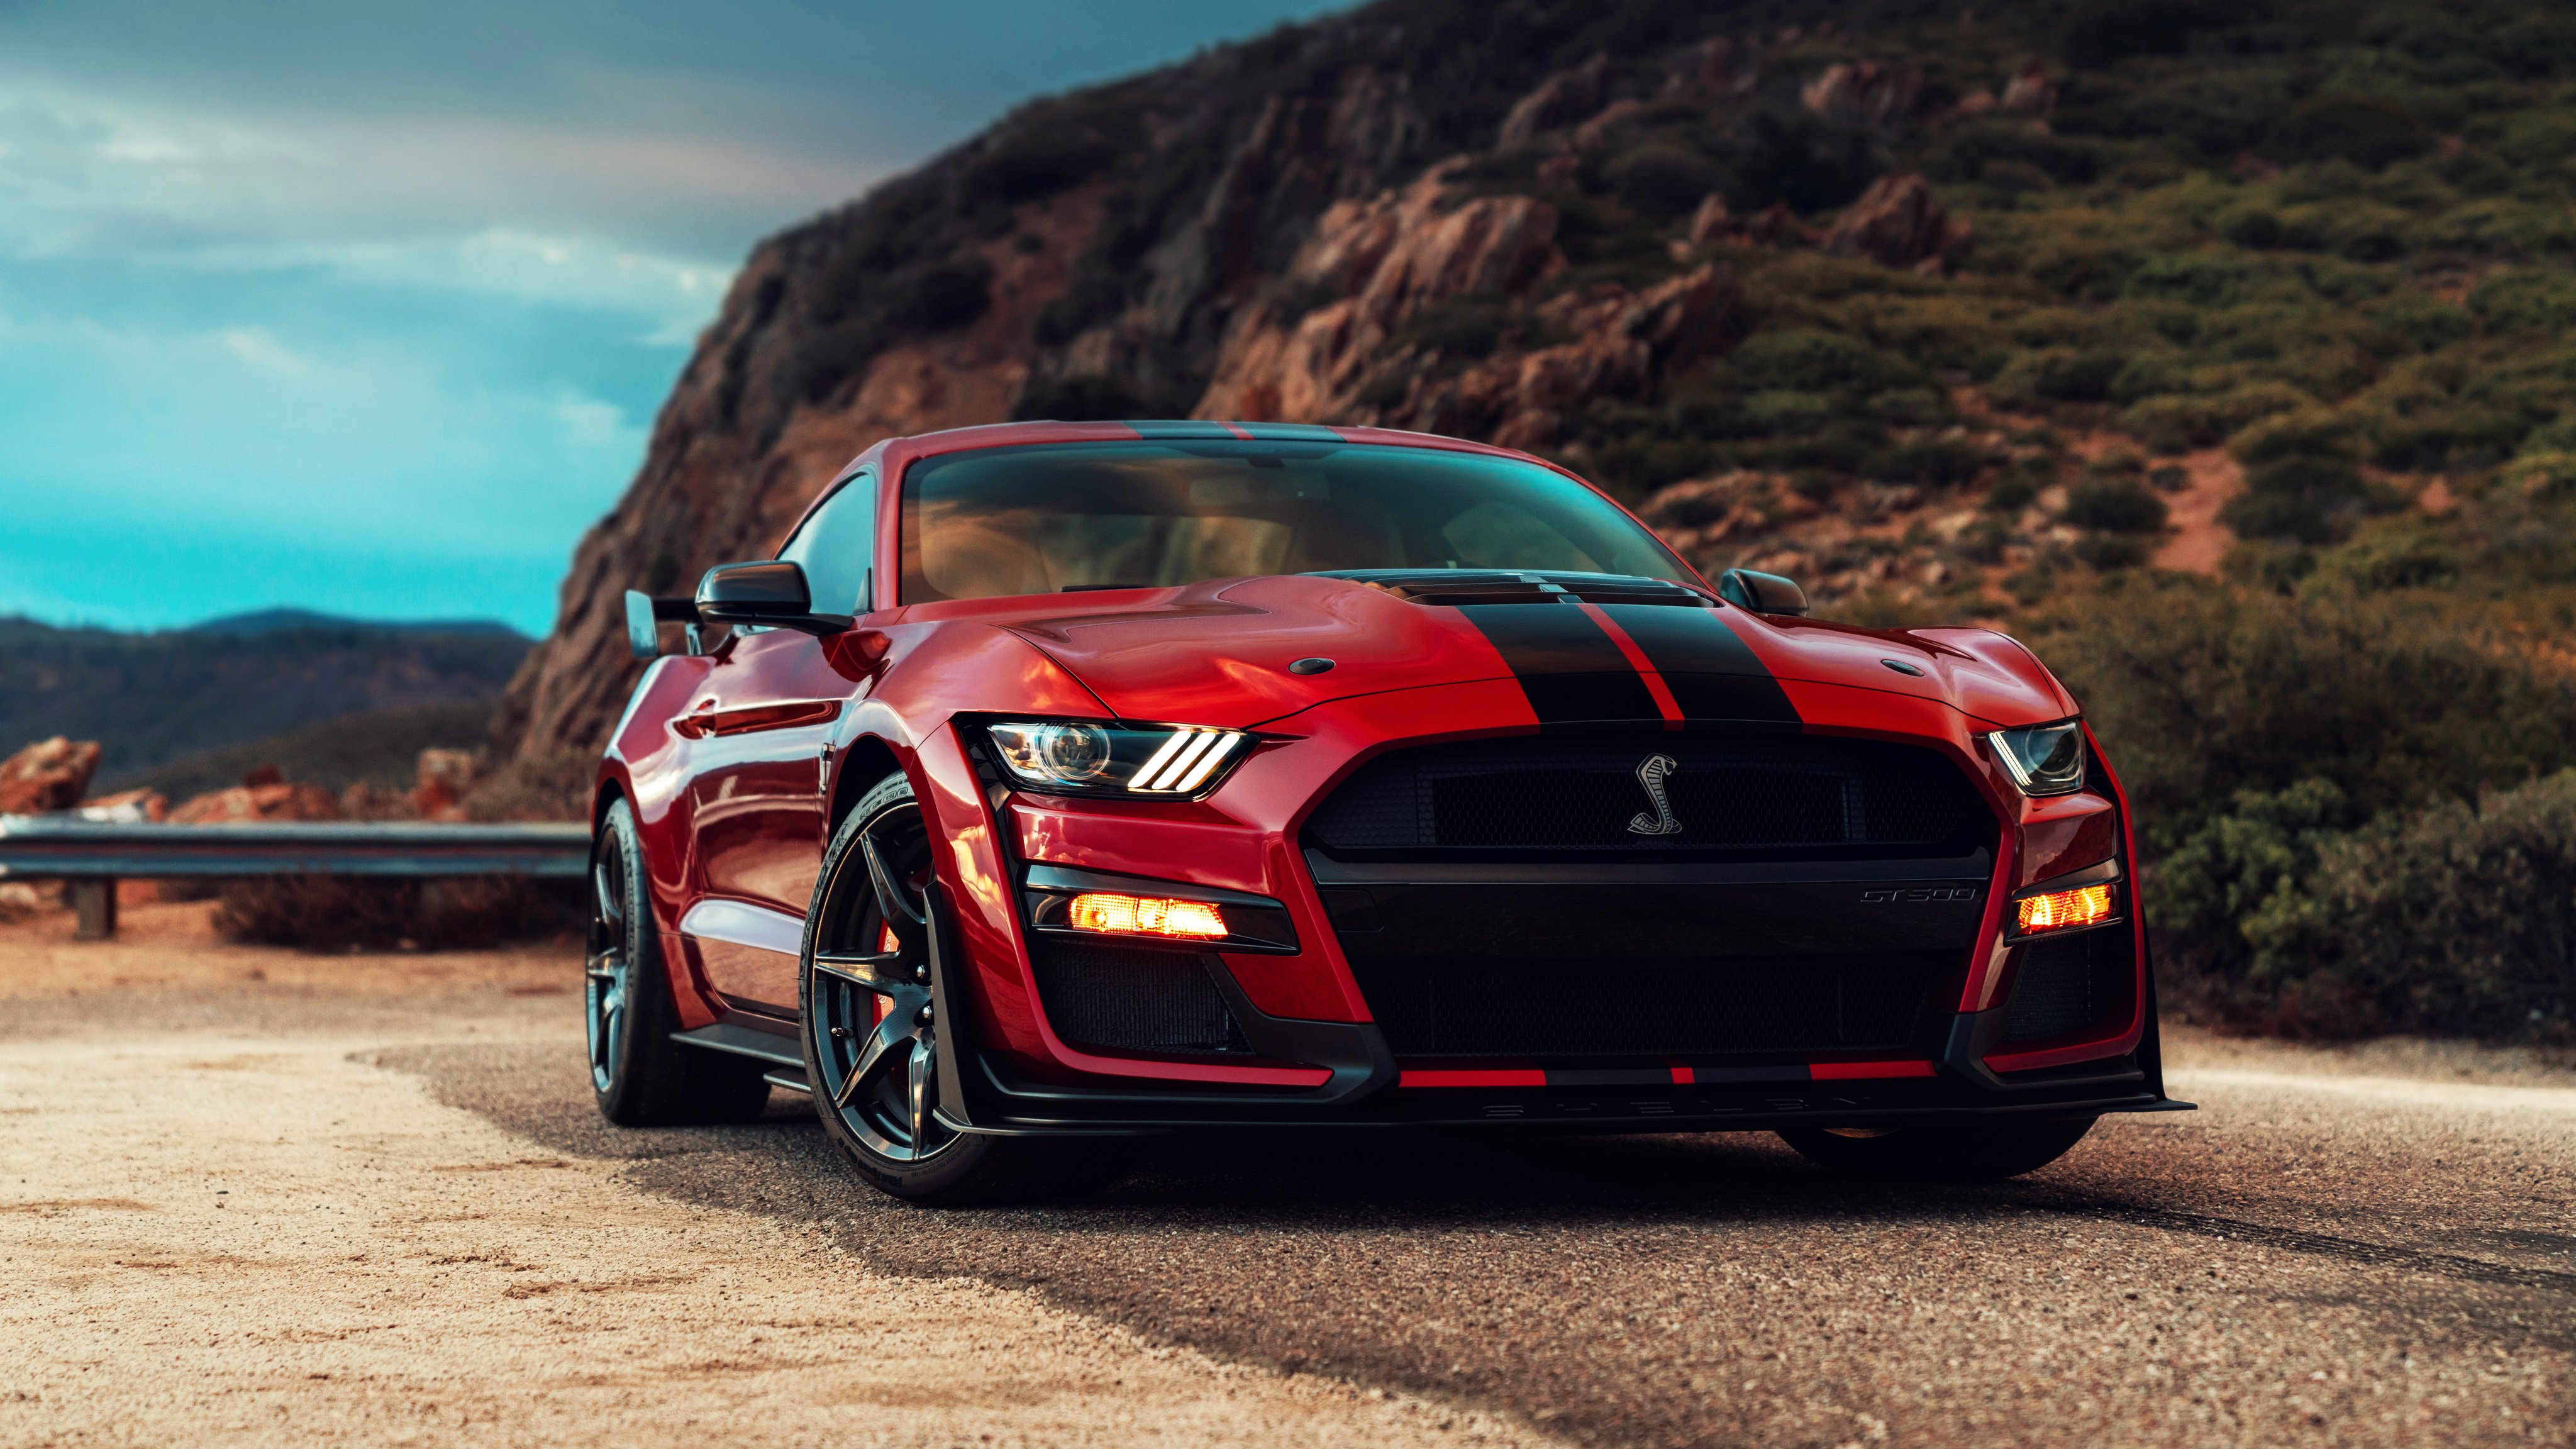 2020 Ford Mustang Shelby GT500 4K Wallpapers HD Wallpapers 4096x2304